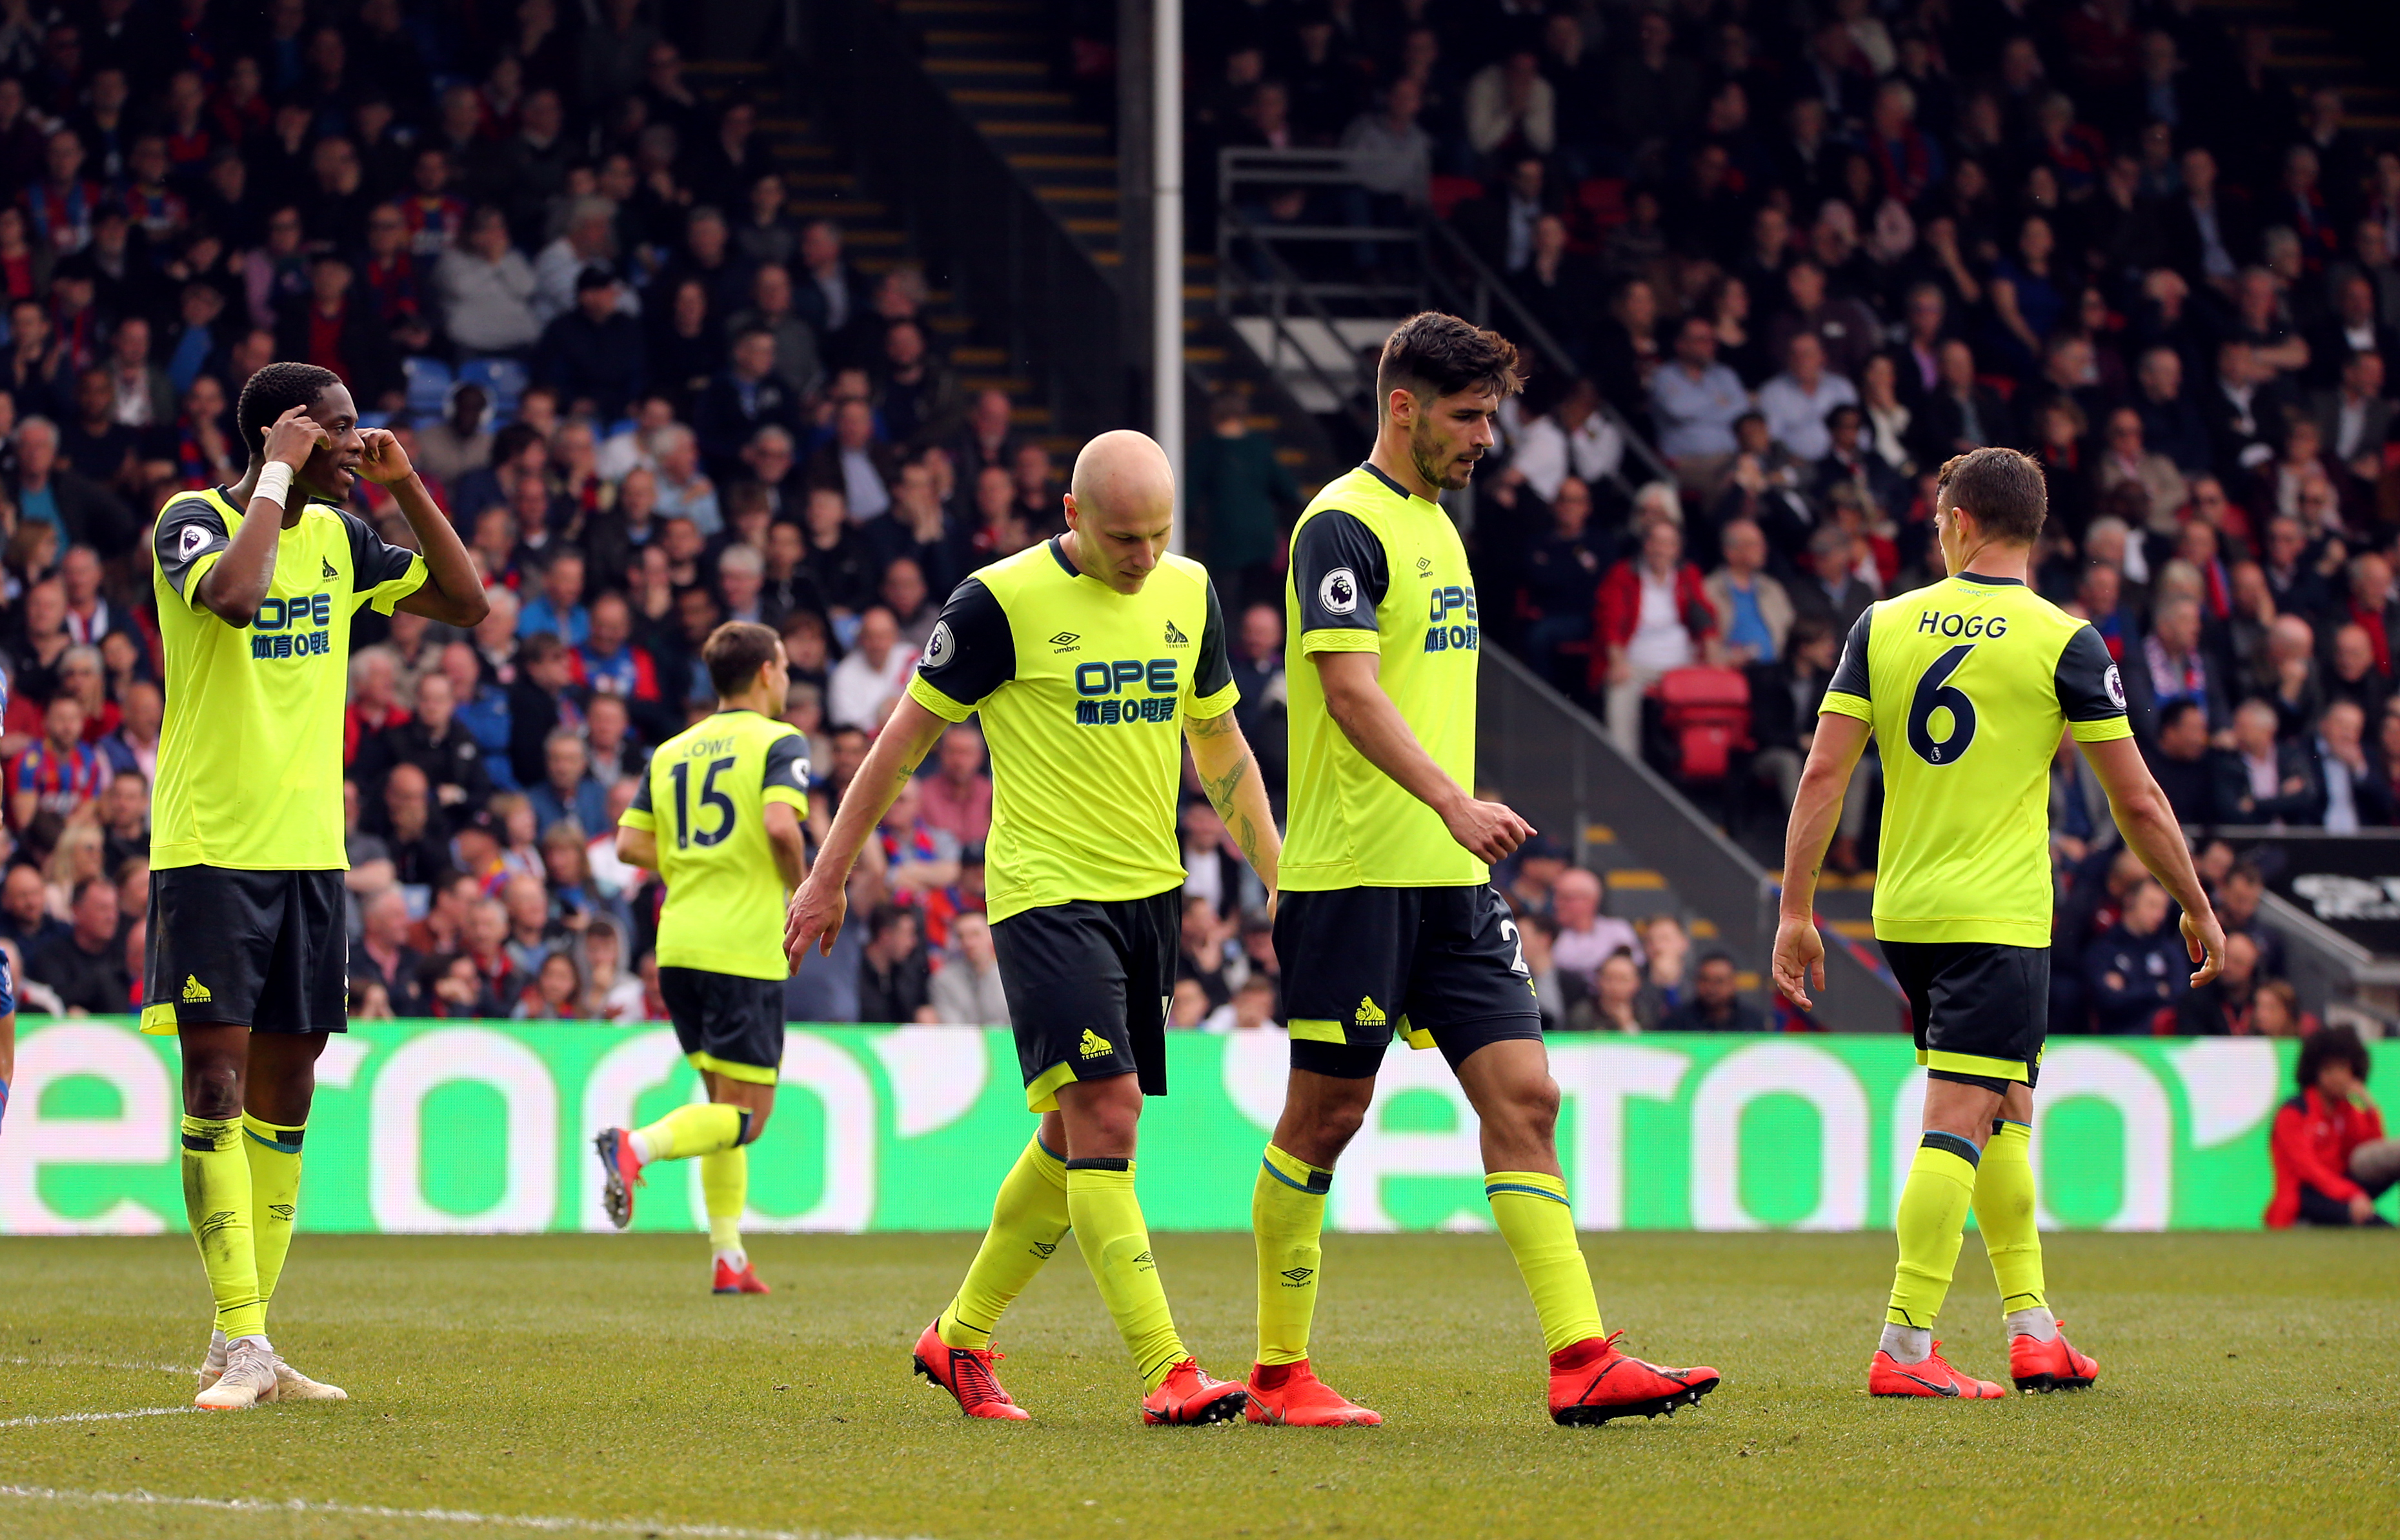 Huddersfield Town players after their loss to Crystal Palace saw them go down. Image: PA Images